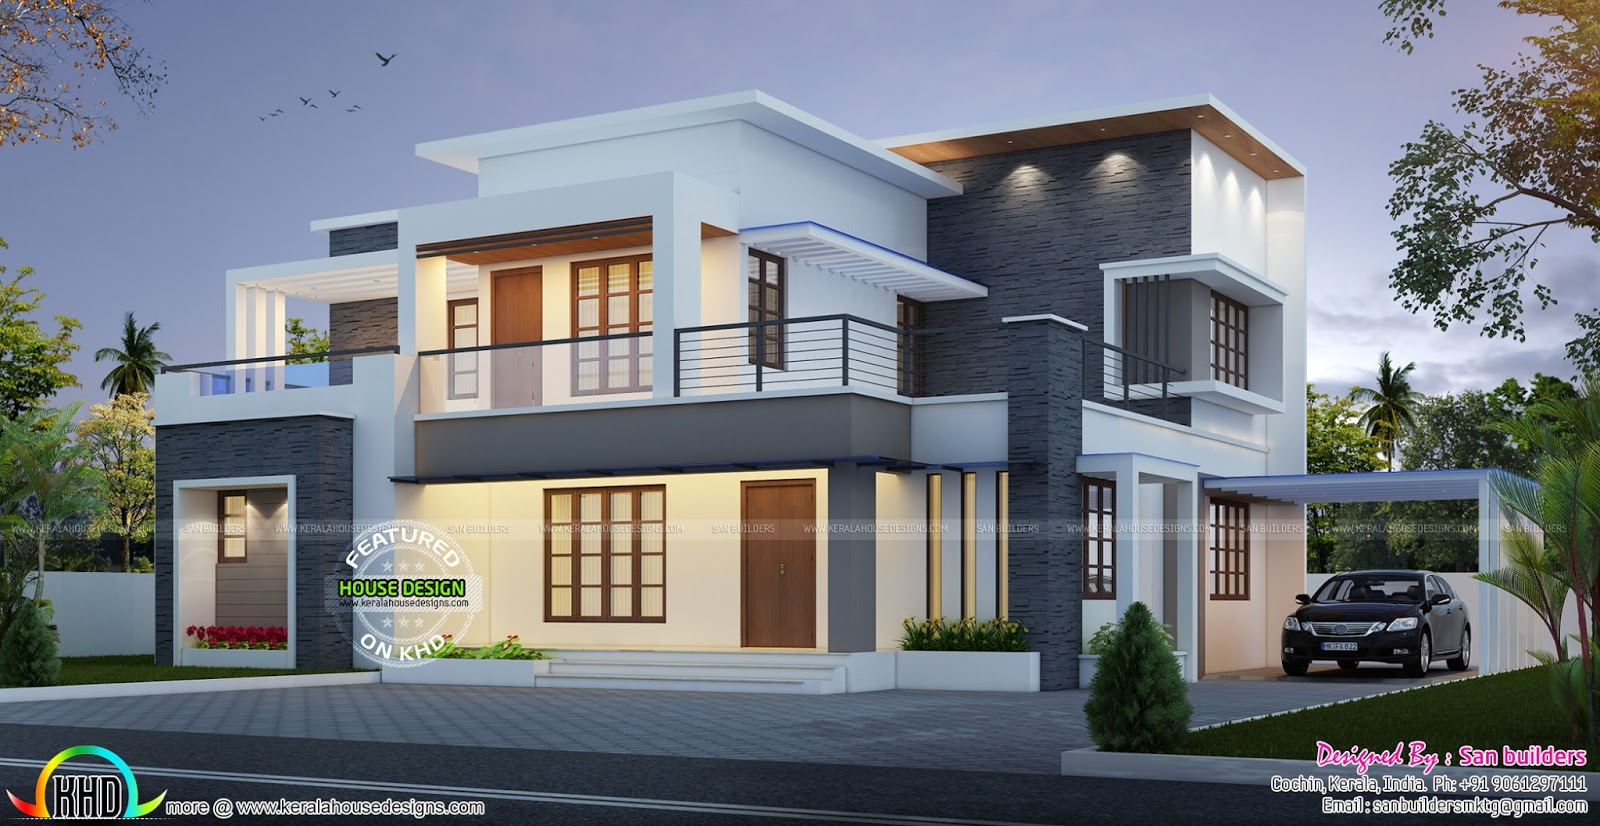 Elevation Plan House : House plan and elevation by san builders kerala home